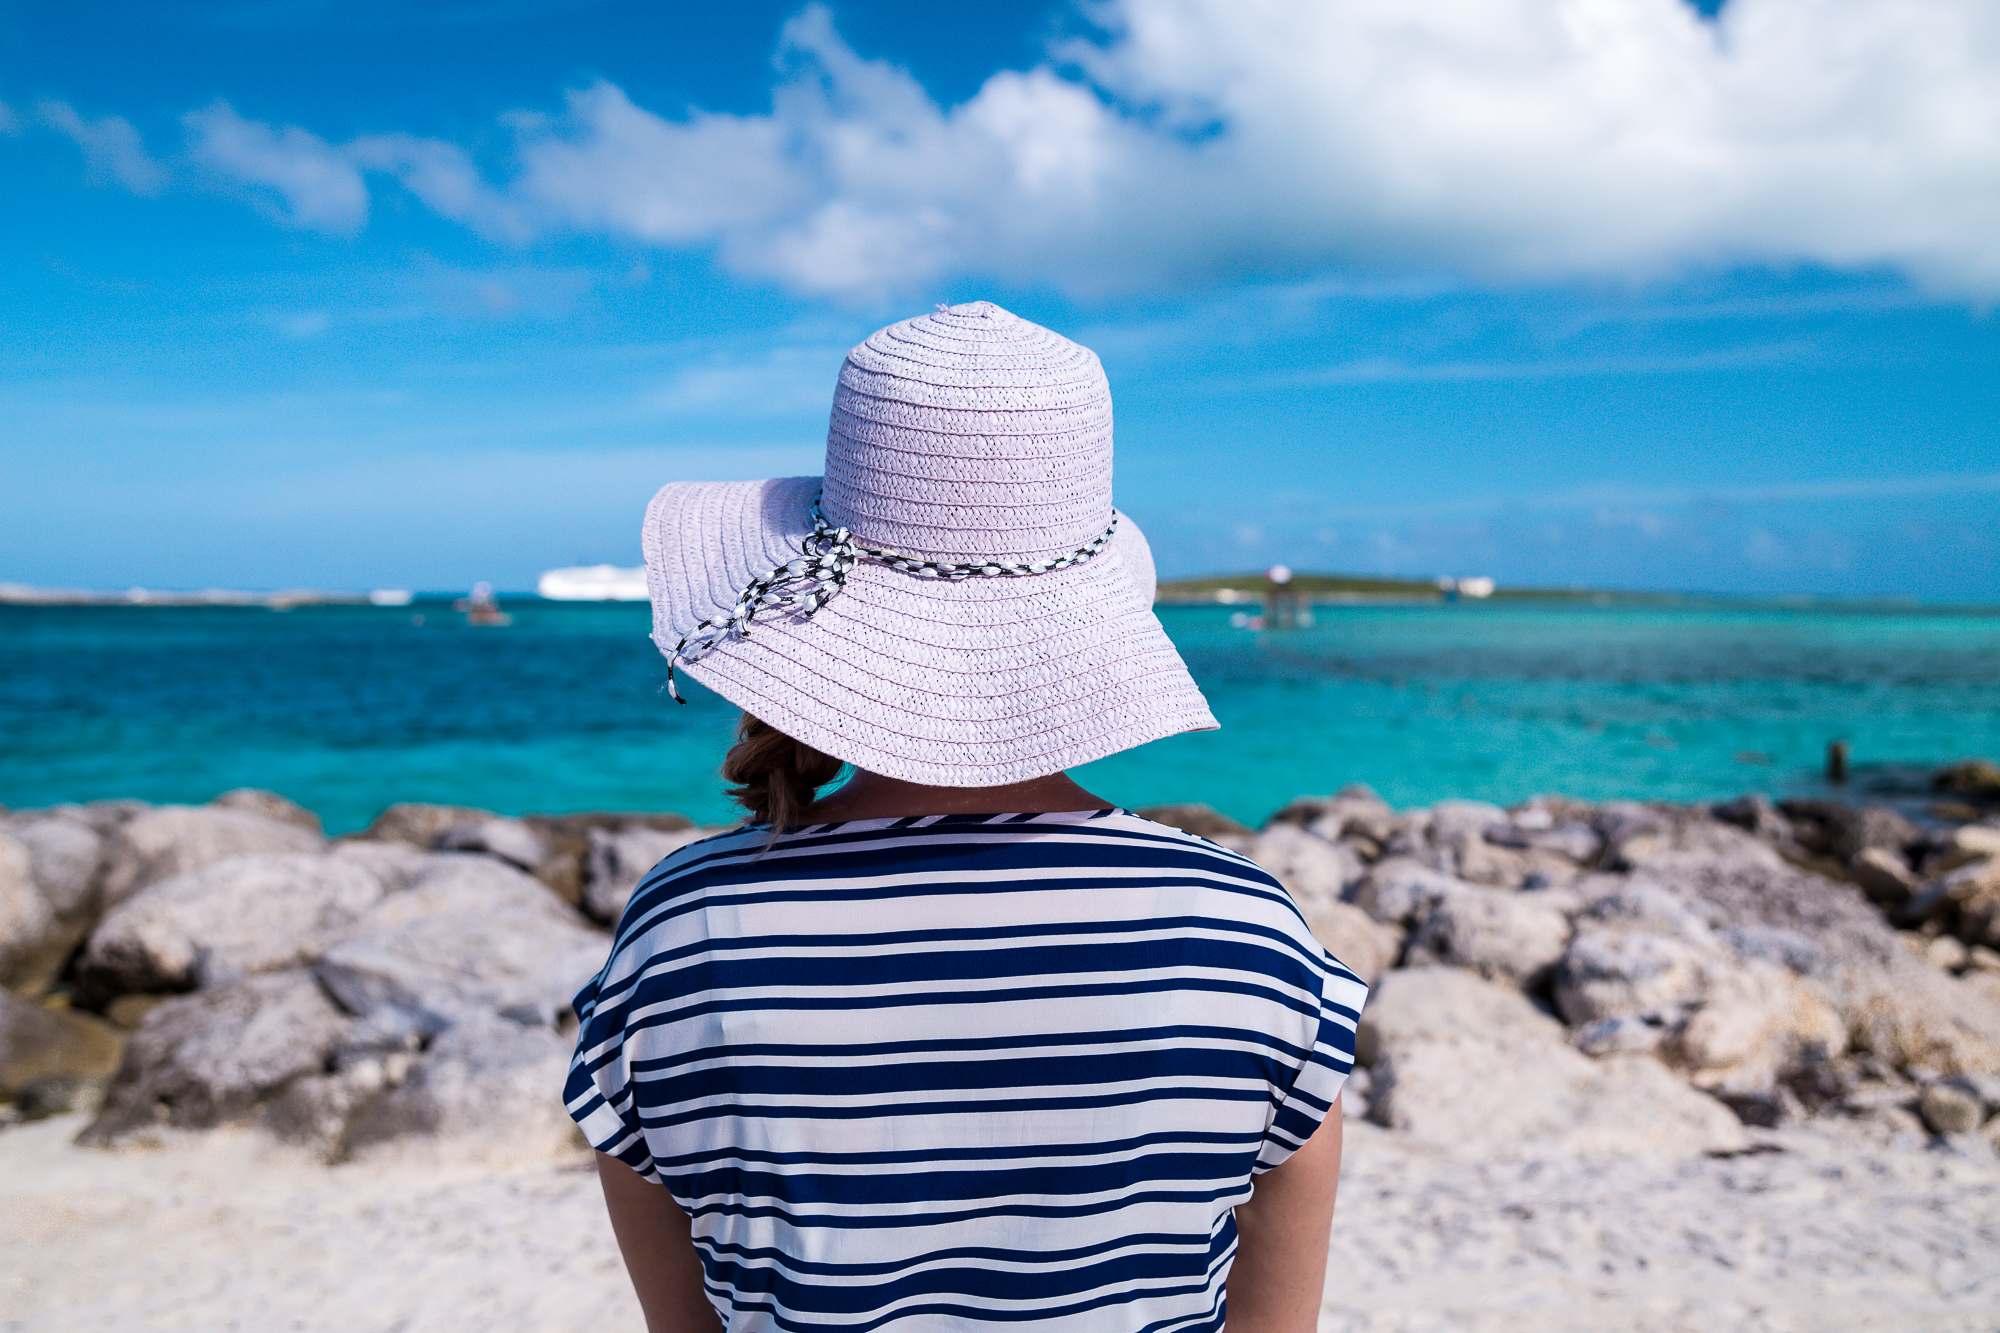 LOOKING OUT INTO THE BEAUTIFUL BLUE WATERS OF COCOCAY